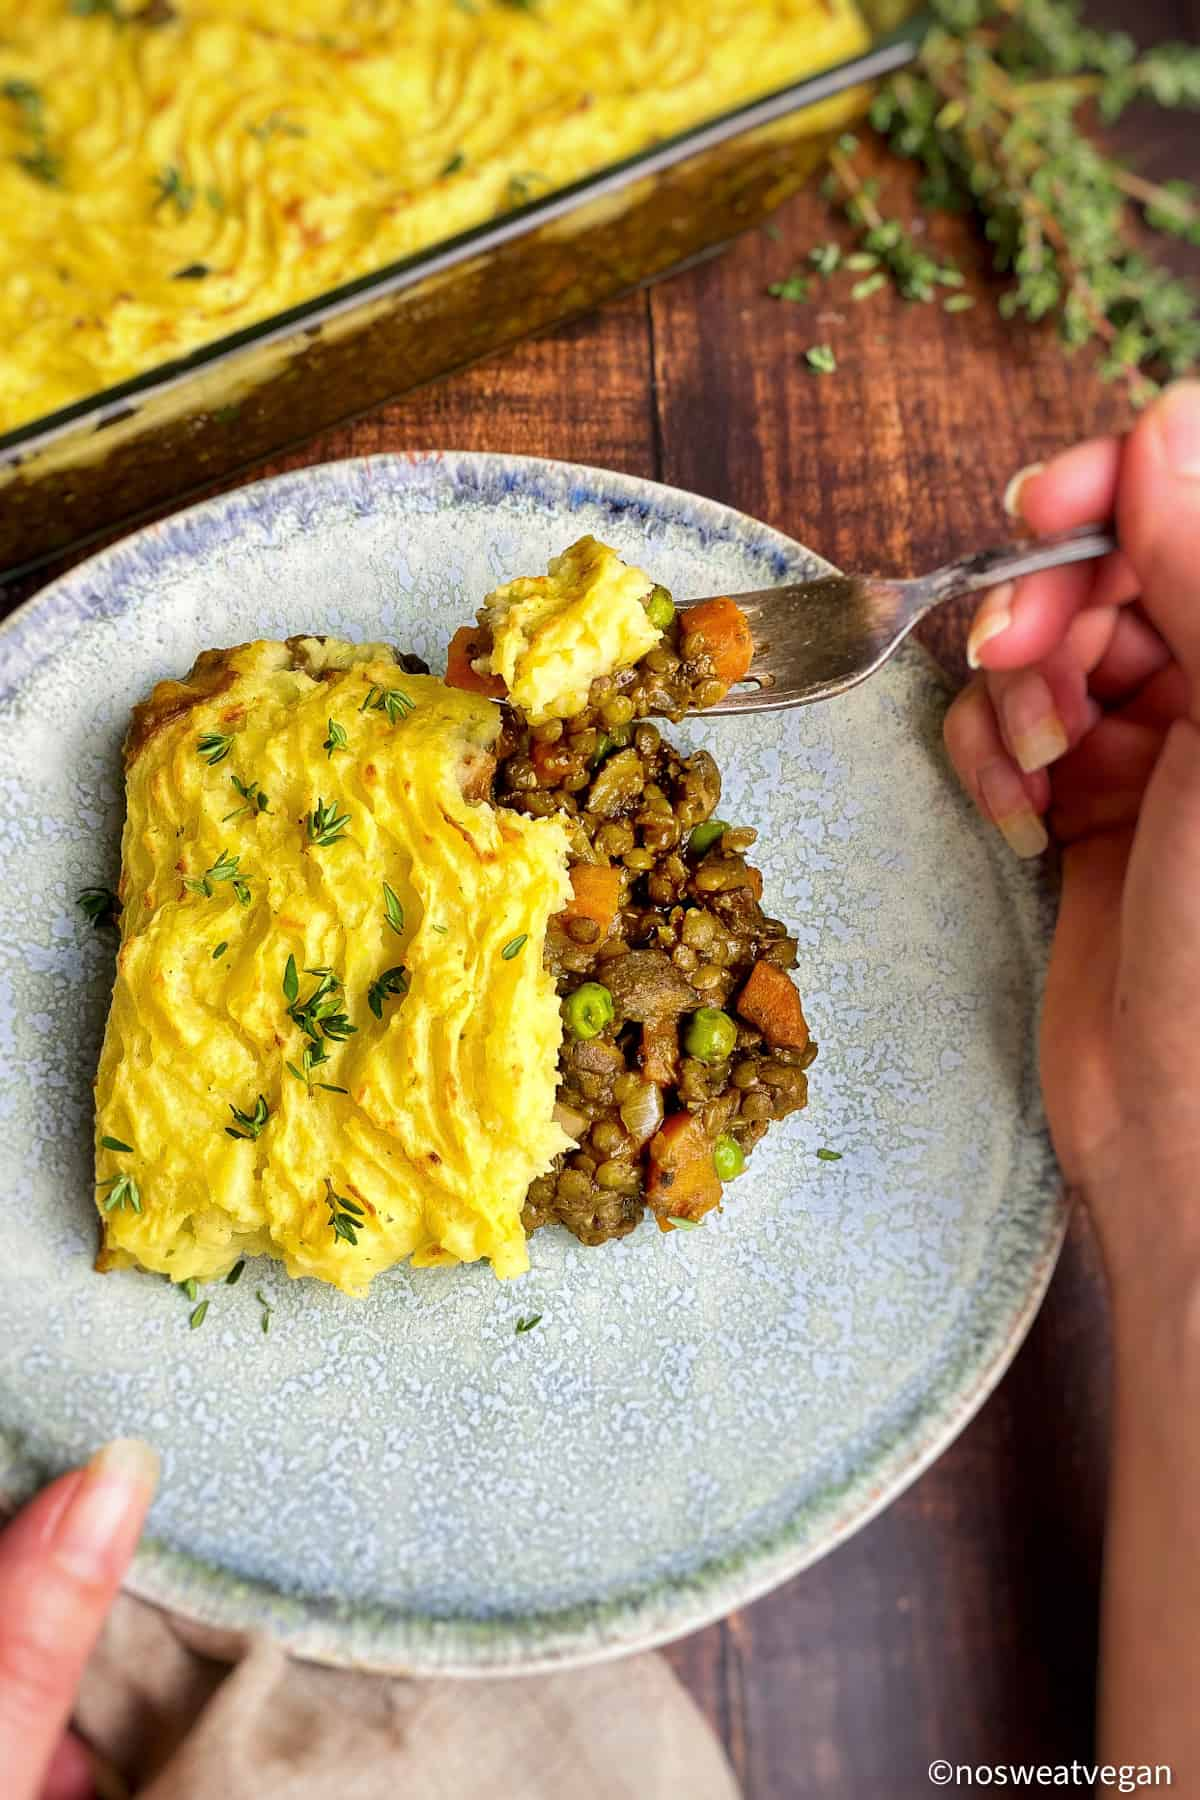 Hand holding a fork with a plate of lentil cottage pie.